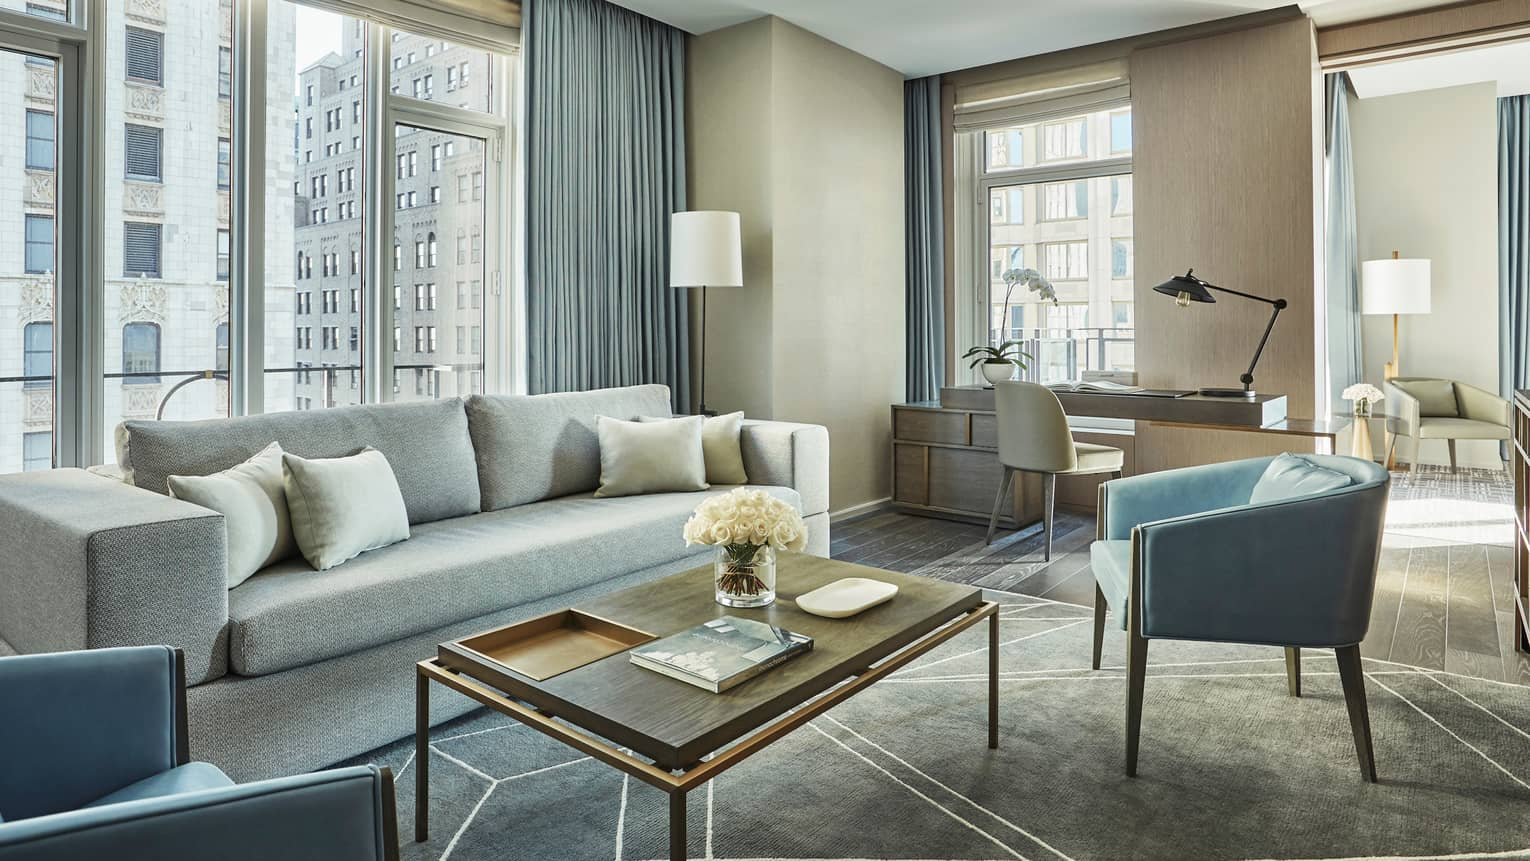 Gotham Suite with Terrace long grey sofa, blue chairs, desk, corner windows with city views